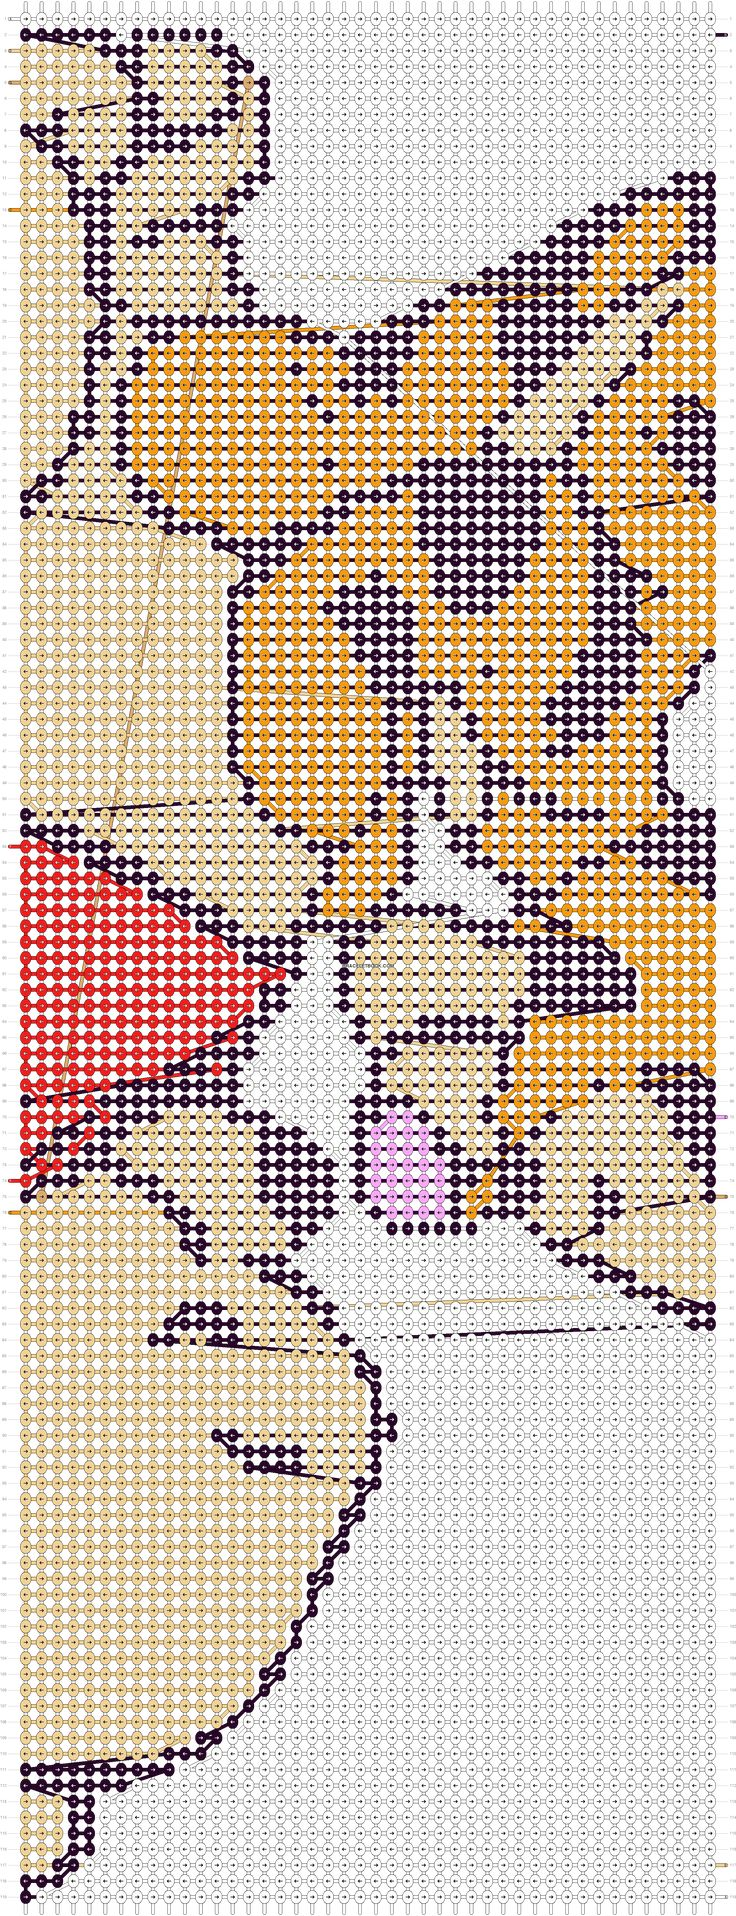 Winnie the pooh friendship bracelet pattern number 11417 - For more patterns and tutorials visit our web or the app!